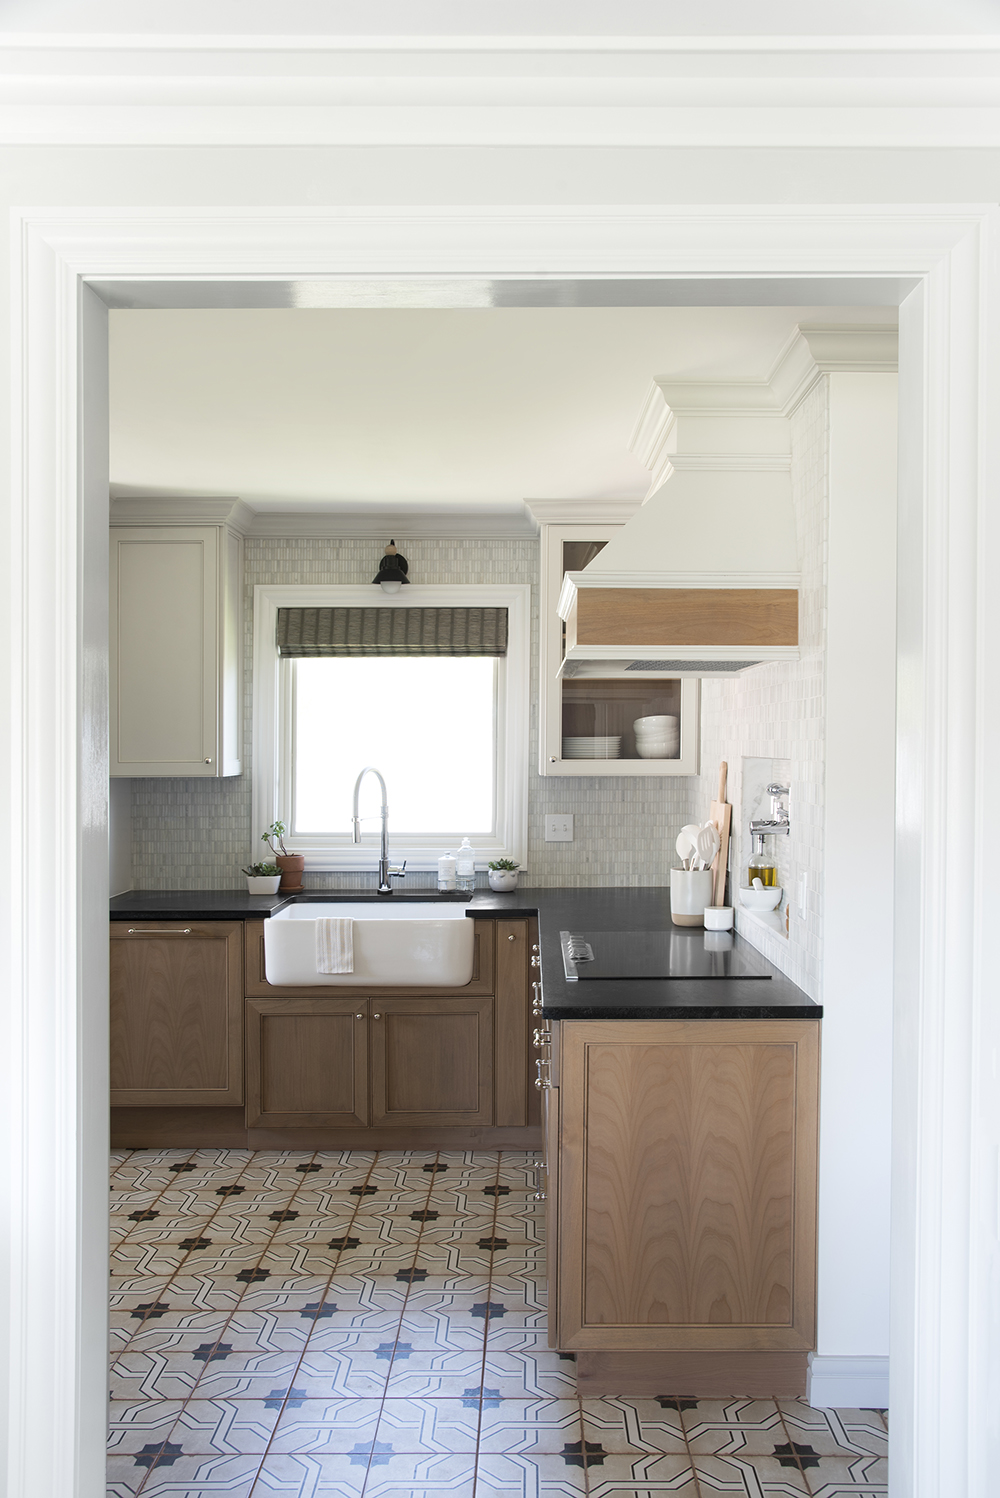 The Complete Kitchen Renovation Budget - Room for Tuesday